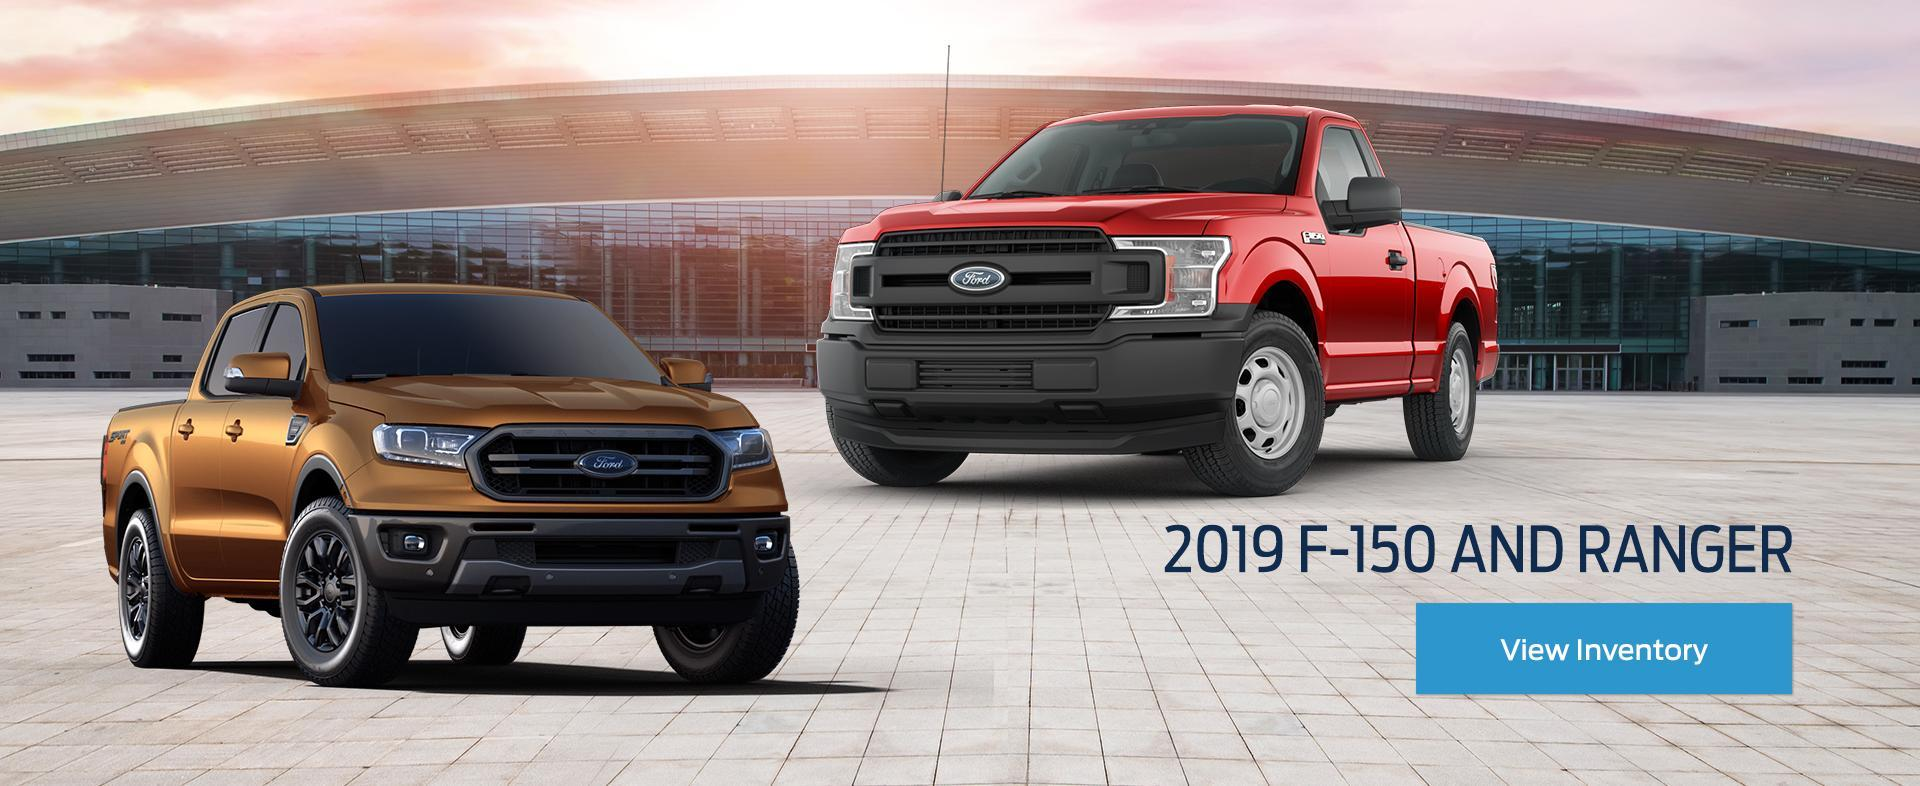 Ford Home 2019 Ford F-150 and Ranger